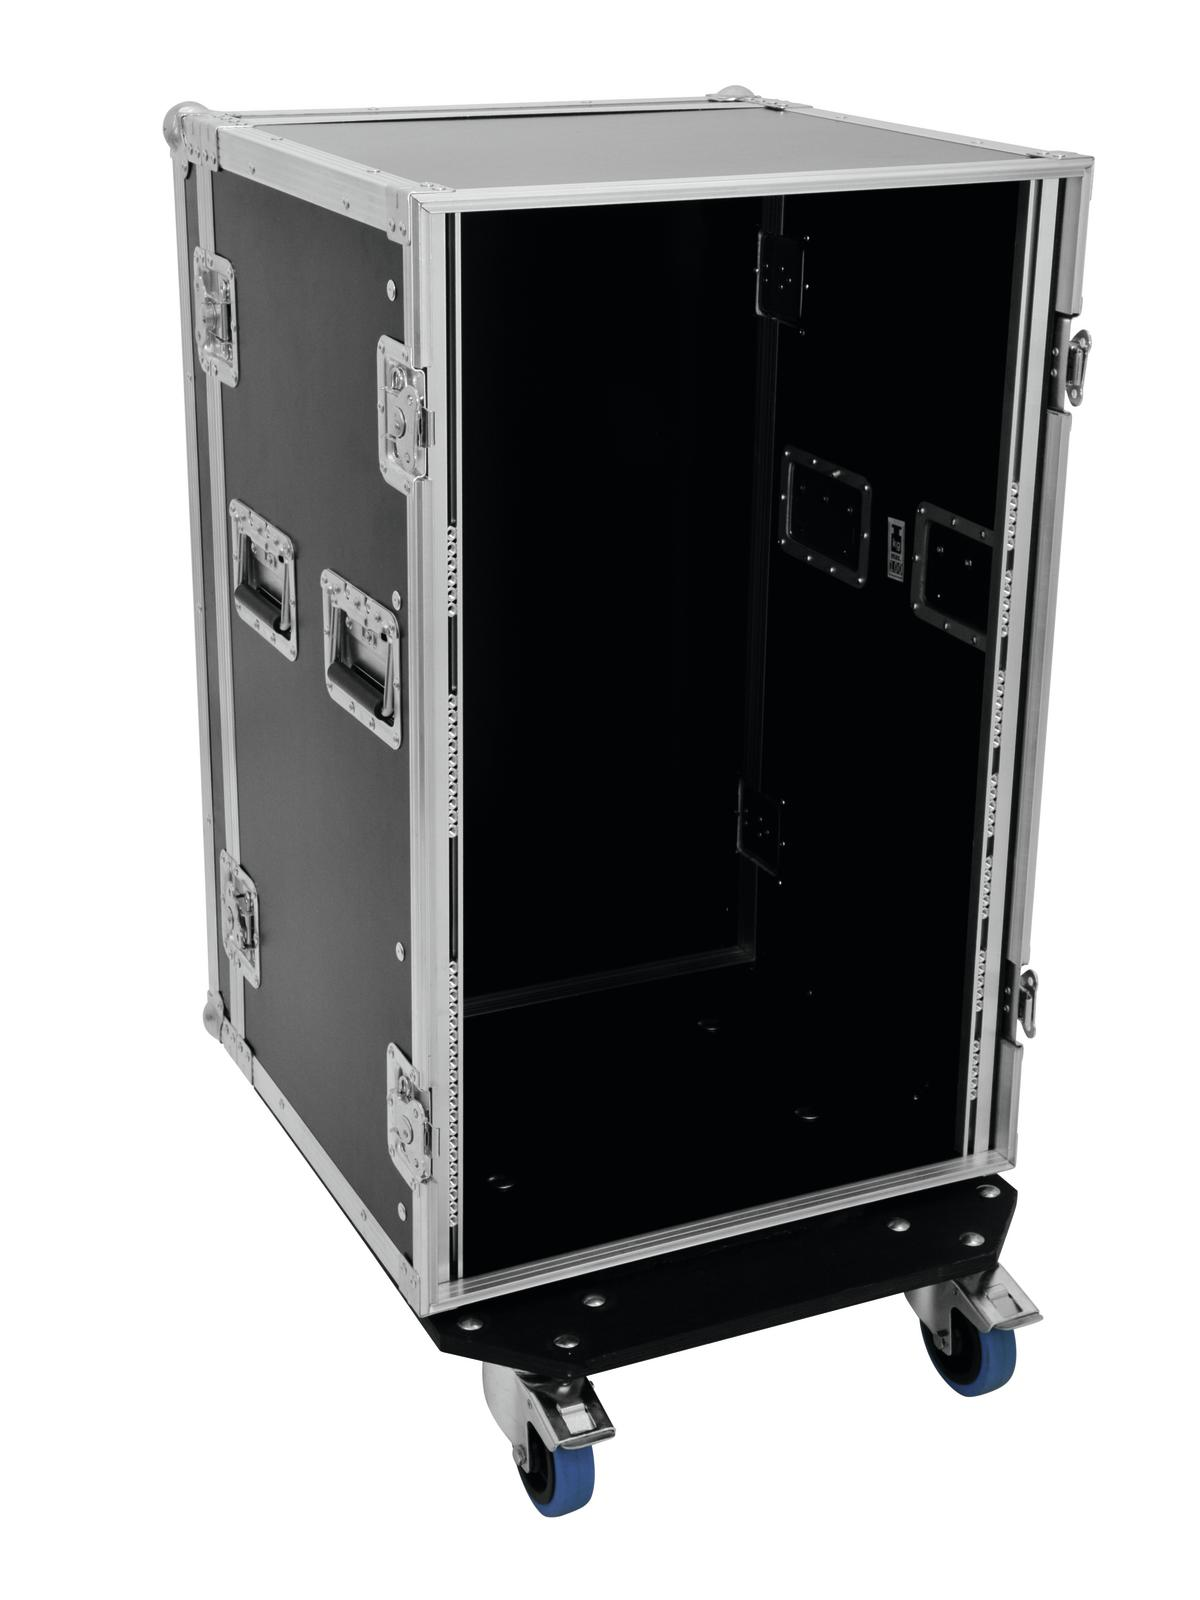 Flight case Rack Per il trasporto Di amplificatori 18U, 45cm Profi ROADINGER Ner